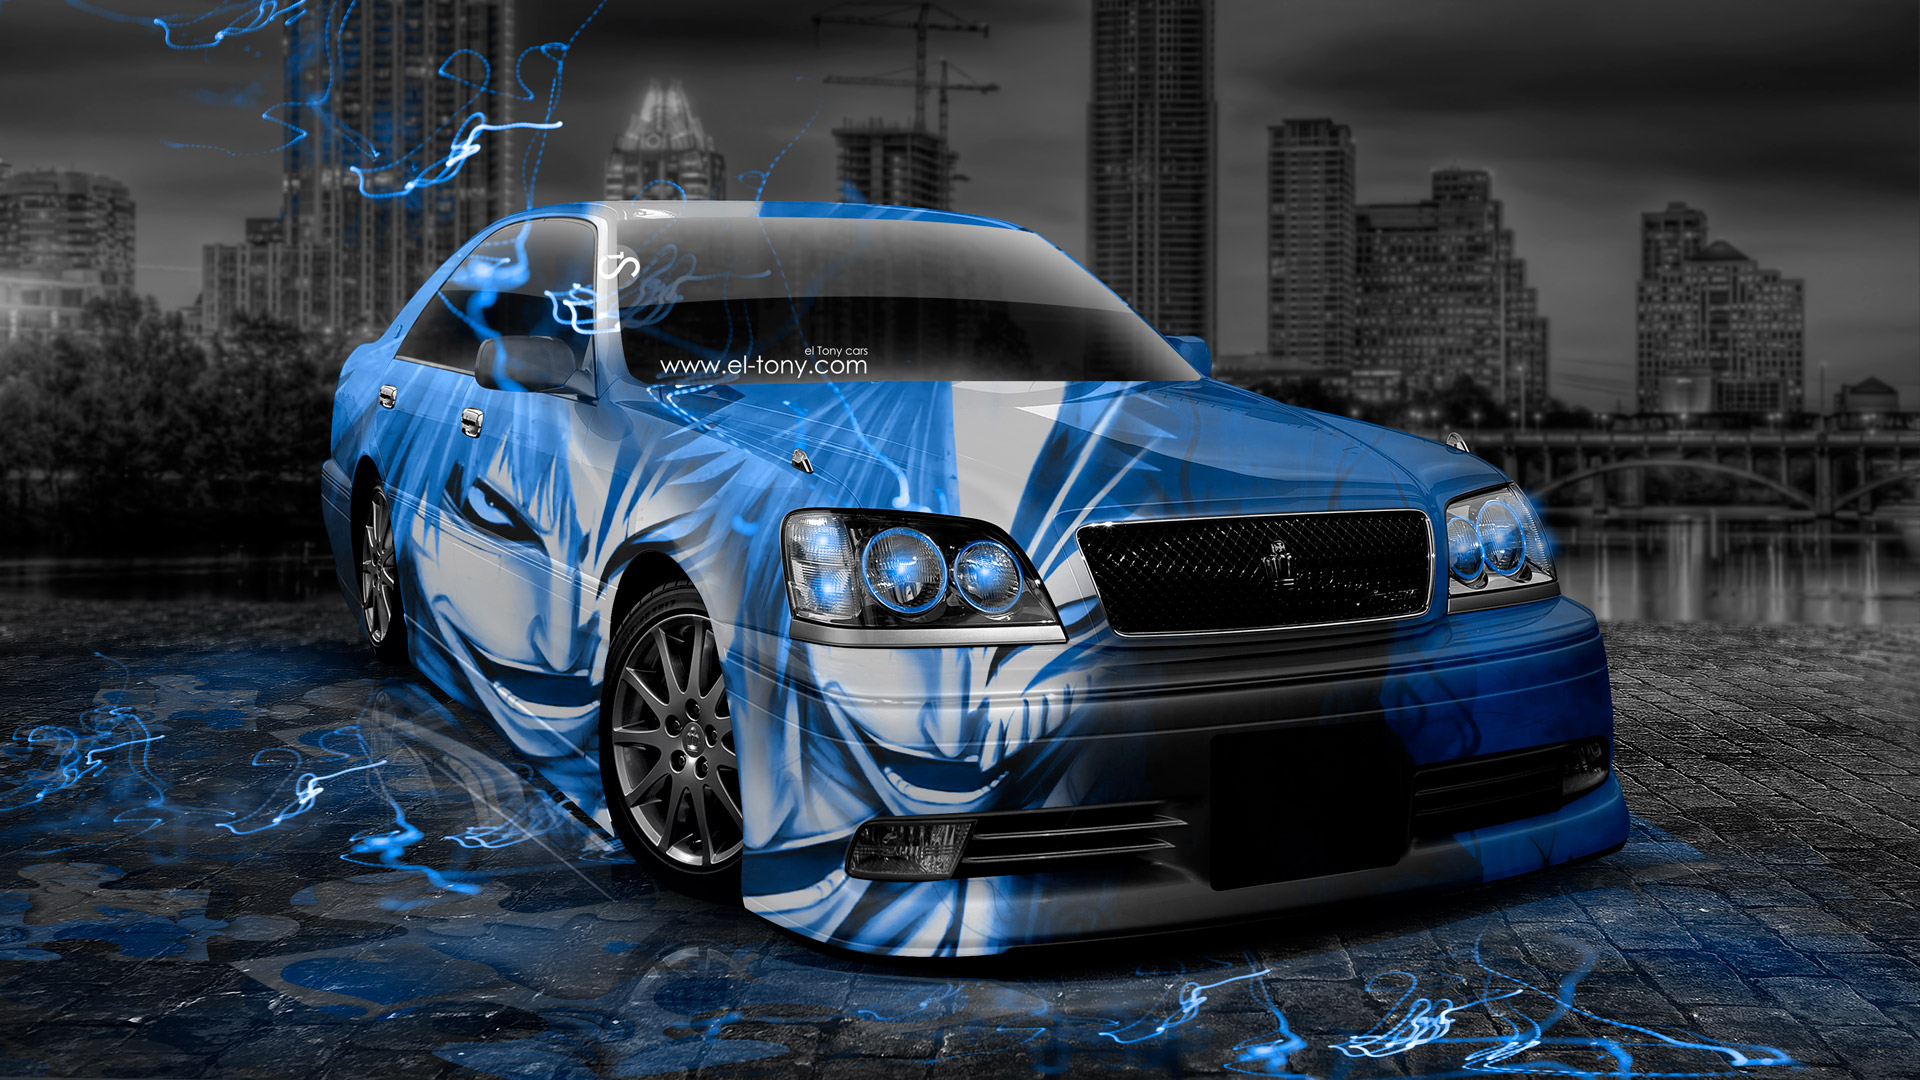 Exceptionnel Toyota Crown Athlete Jdm Anime Bleach Aerography City Car 2017